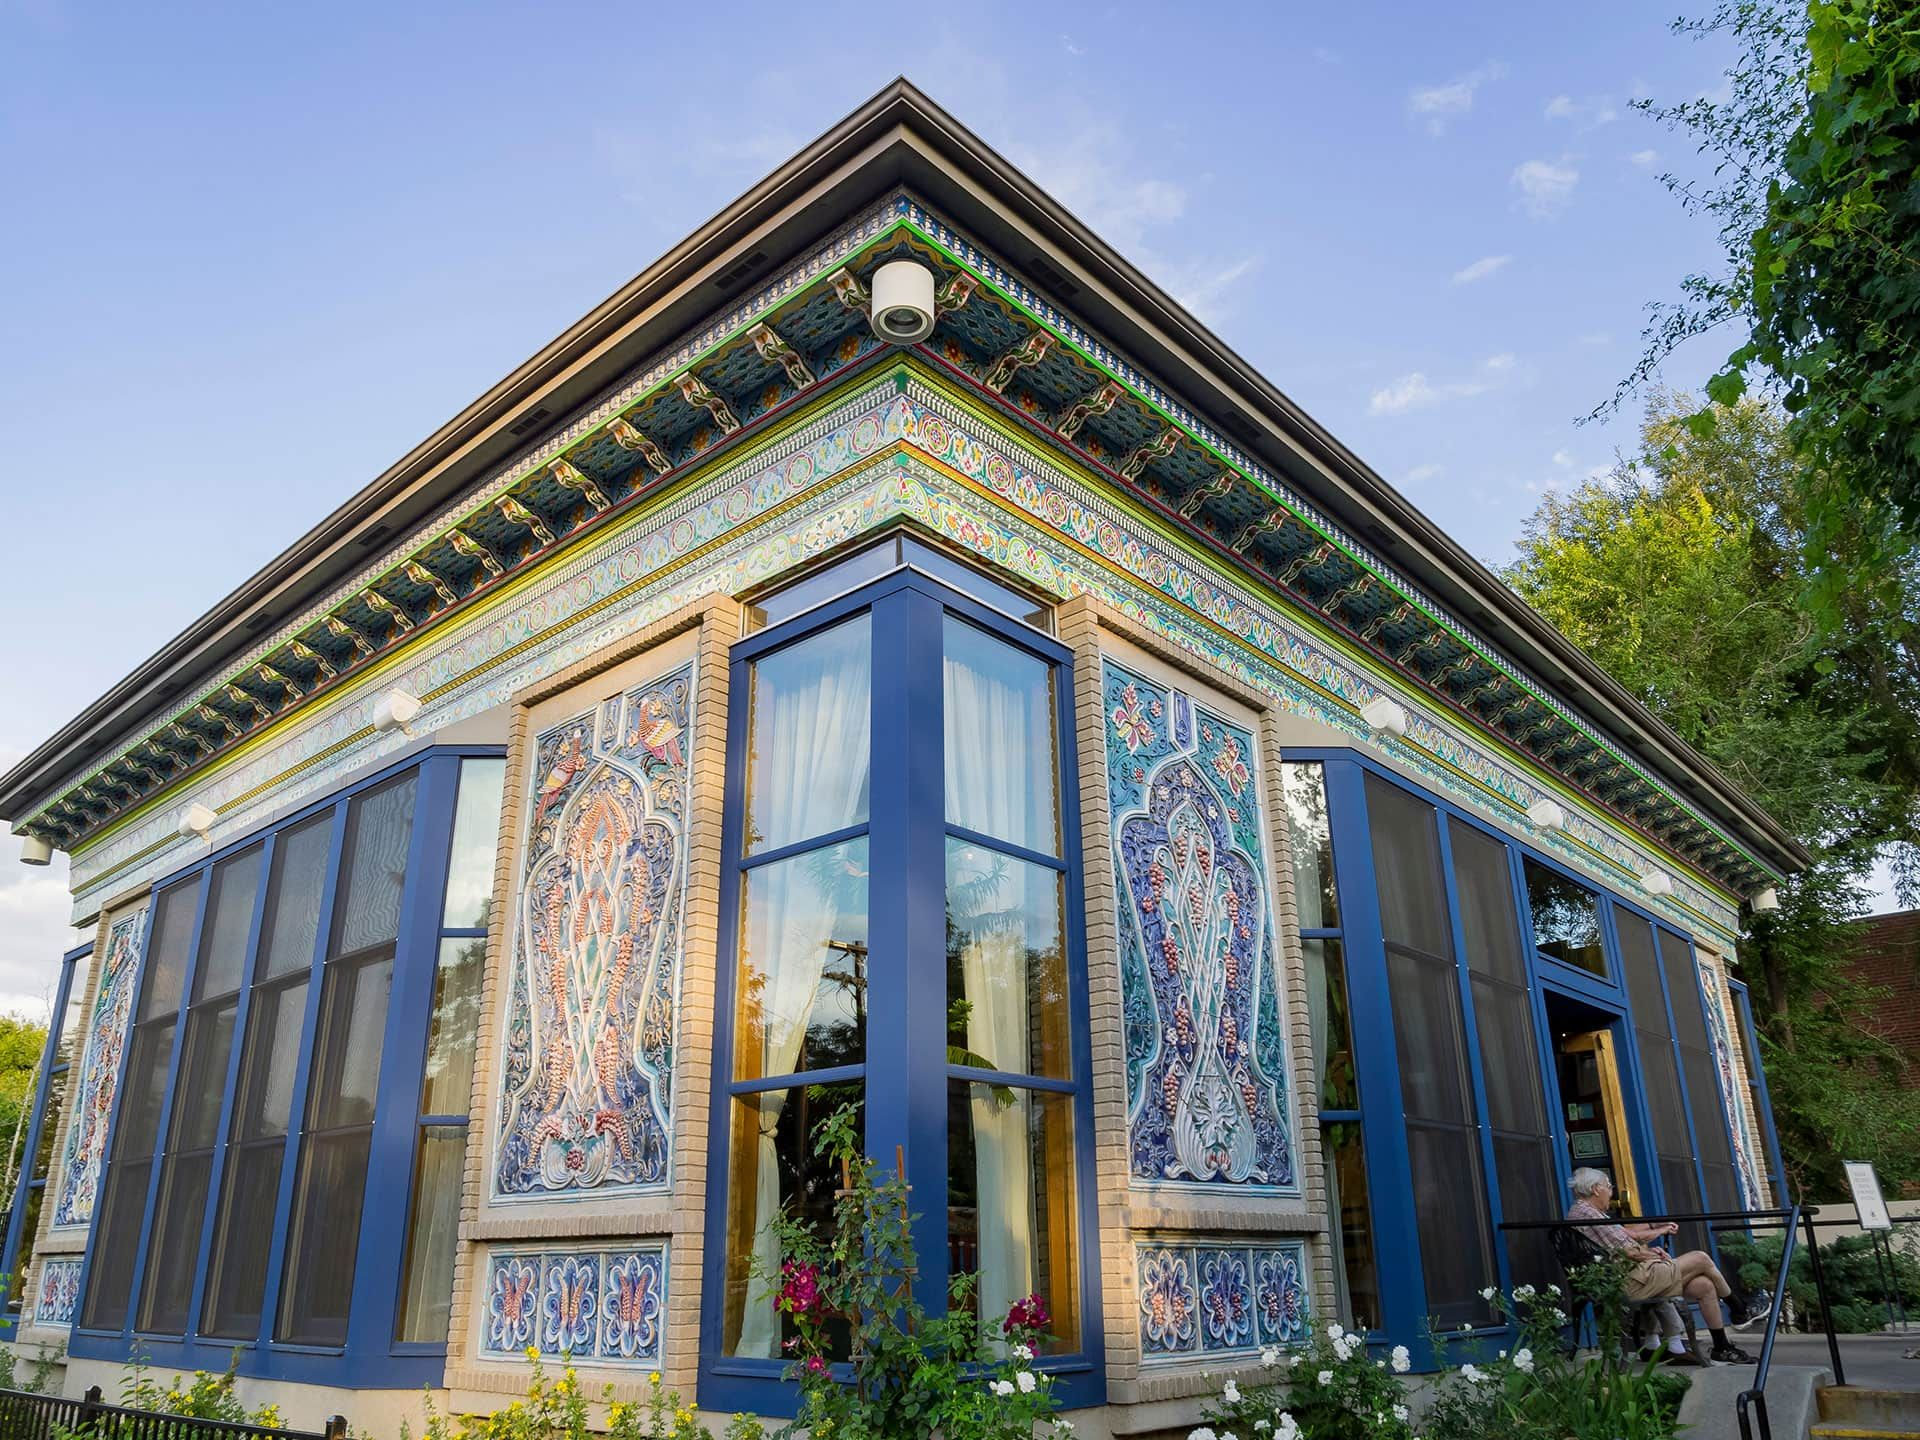 The Boulder Dushanbe Teahouse Hand Crafted In Tajikistan Brings A Piece Of The Himalayas To Colorado 8217 S Front Range Bouldering Tea House Dushanbe